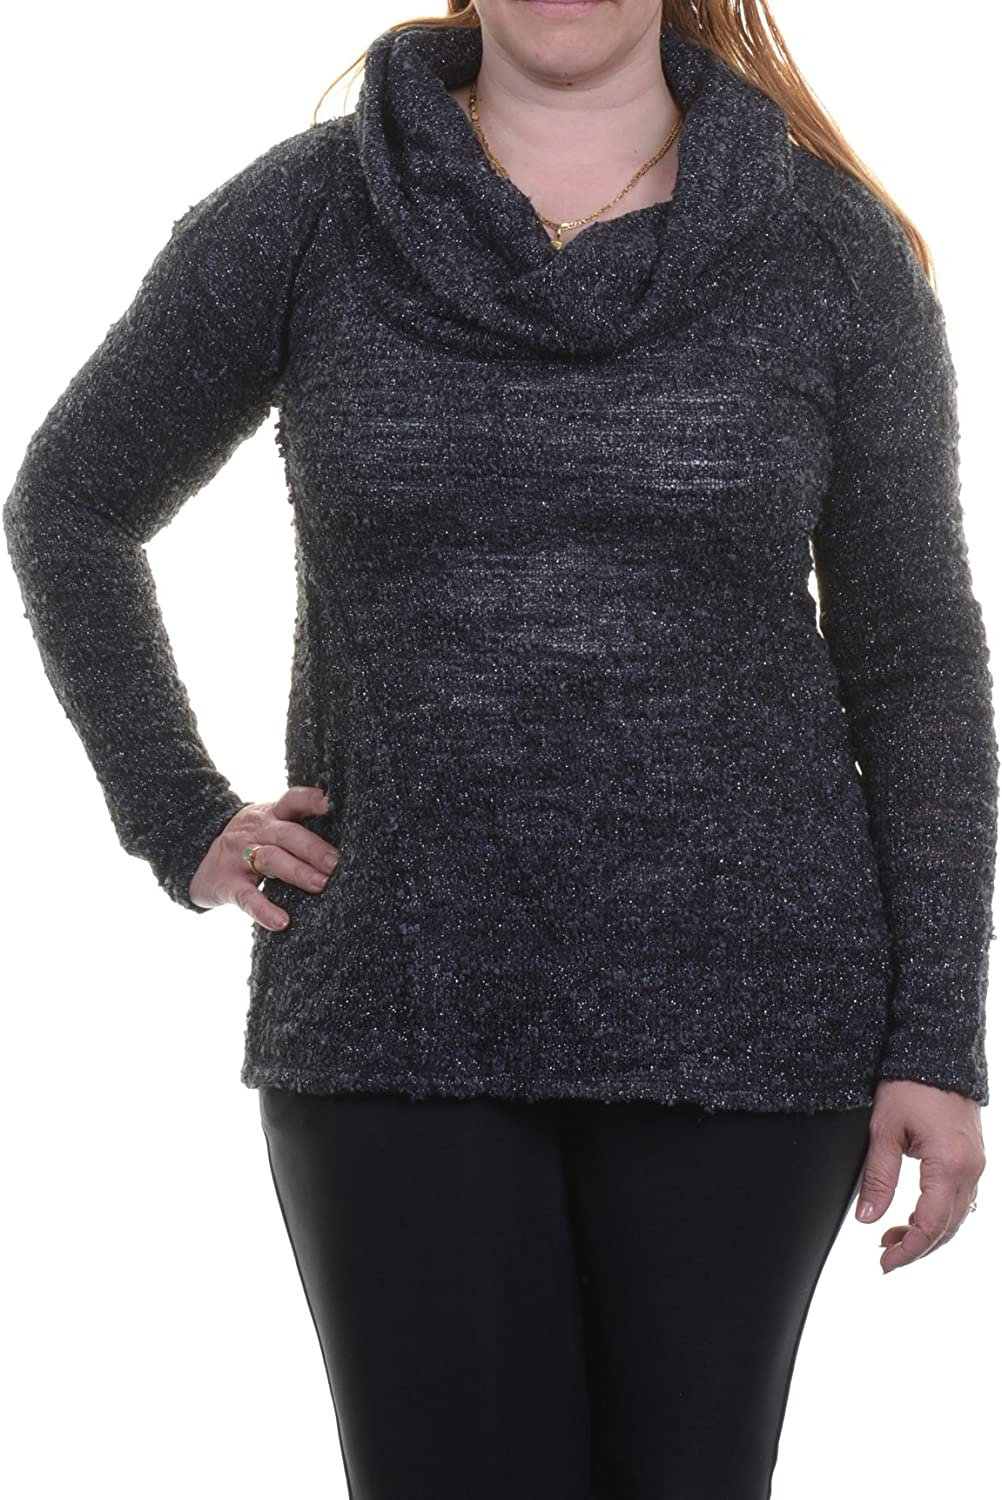 Sanctuary Womens Metallic Knit Pullover Tampa Mall Sweater Black S High order